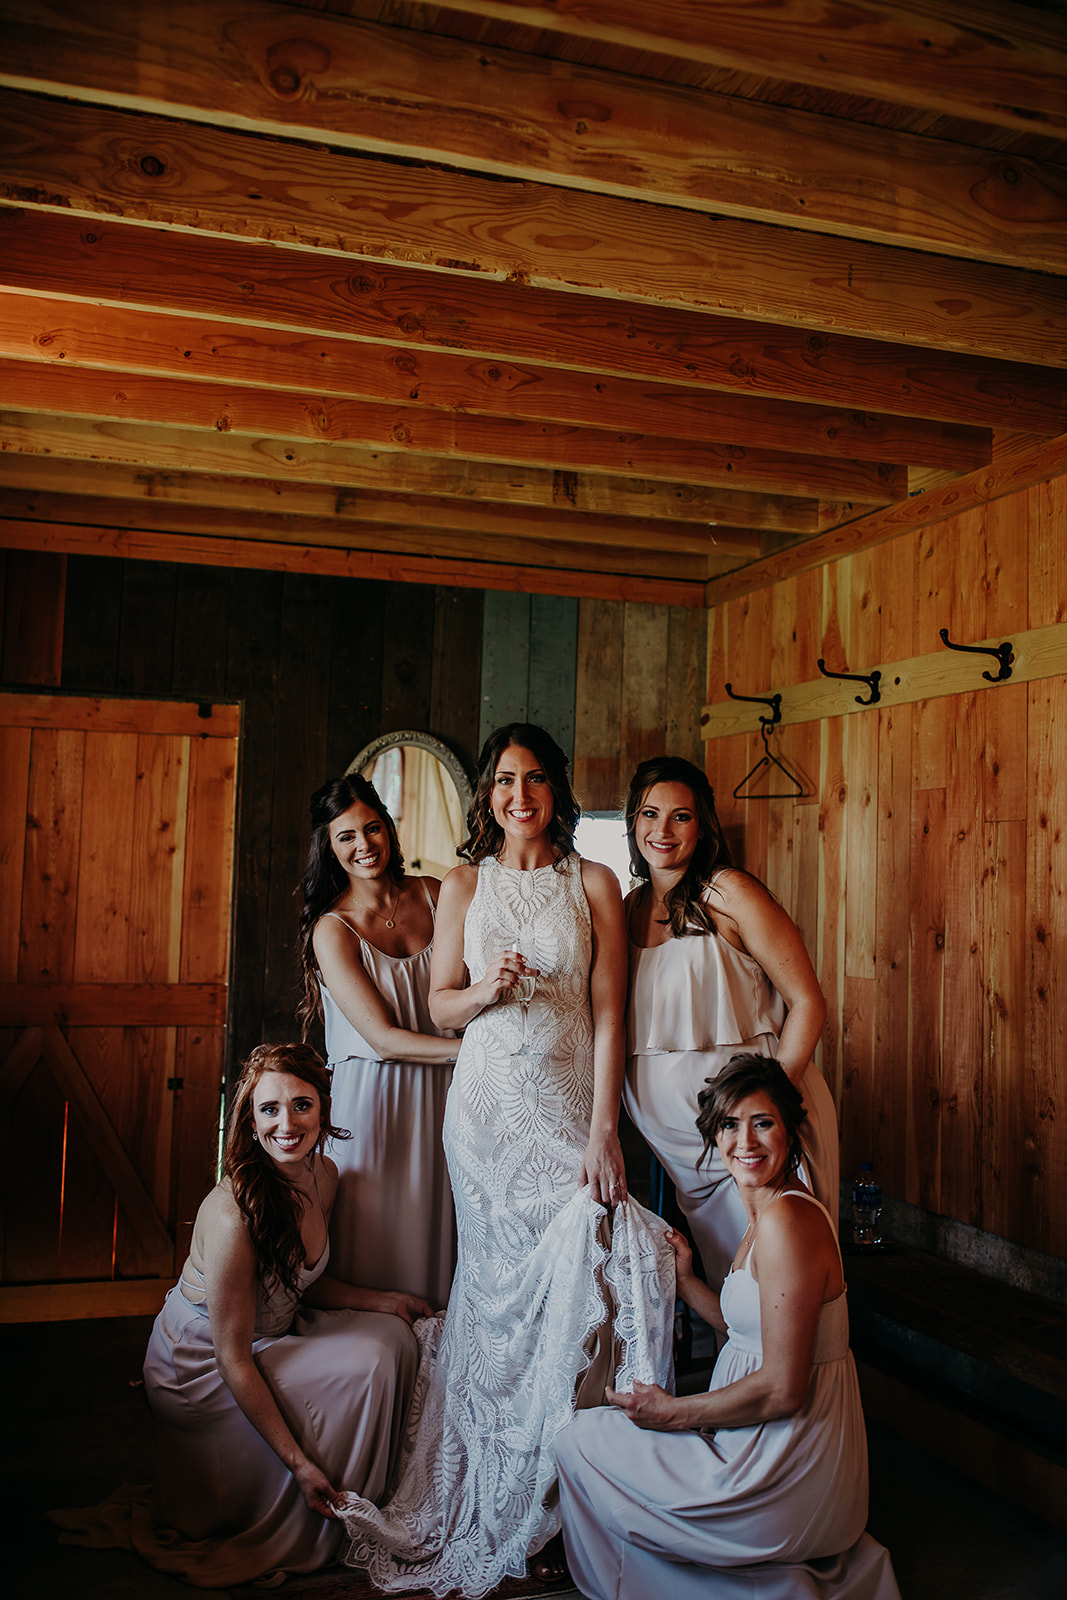 mount-vernon-wedding-salt-box-barn-amanda-riley-megan-gallagher-photography-2_(204_of_215).jpg